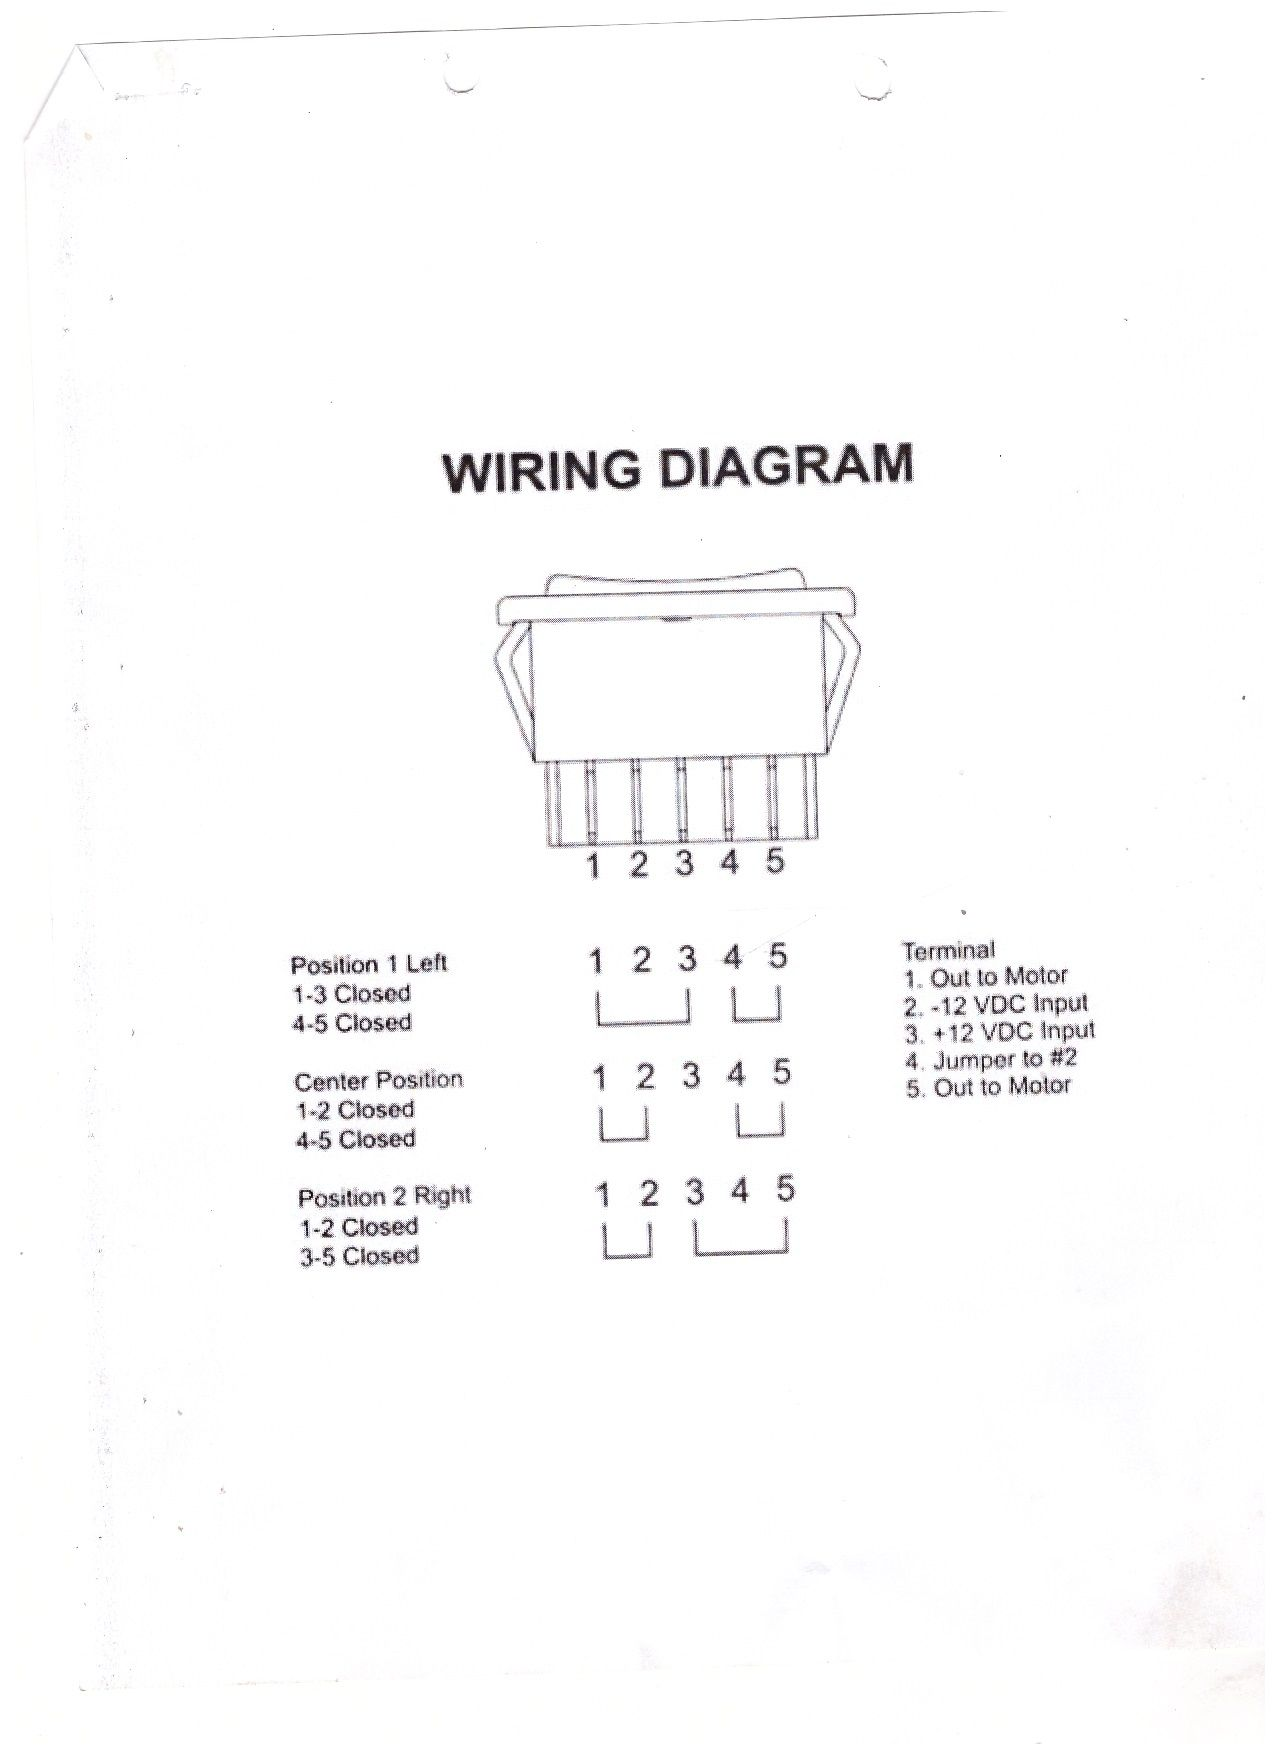 Best 12v Relay Wiring Diagram Pin Images At Switch 5 How To Wire A ..